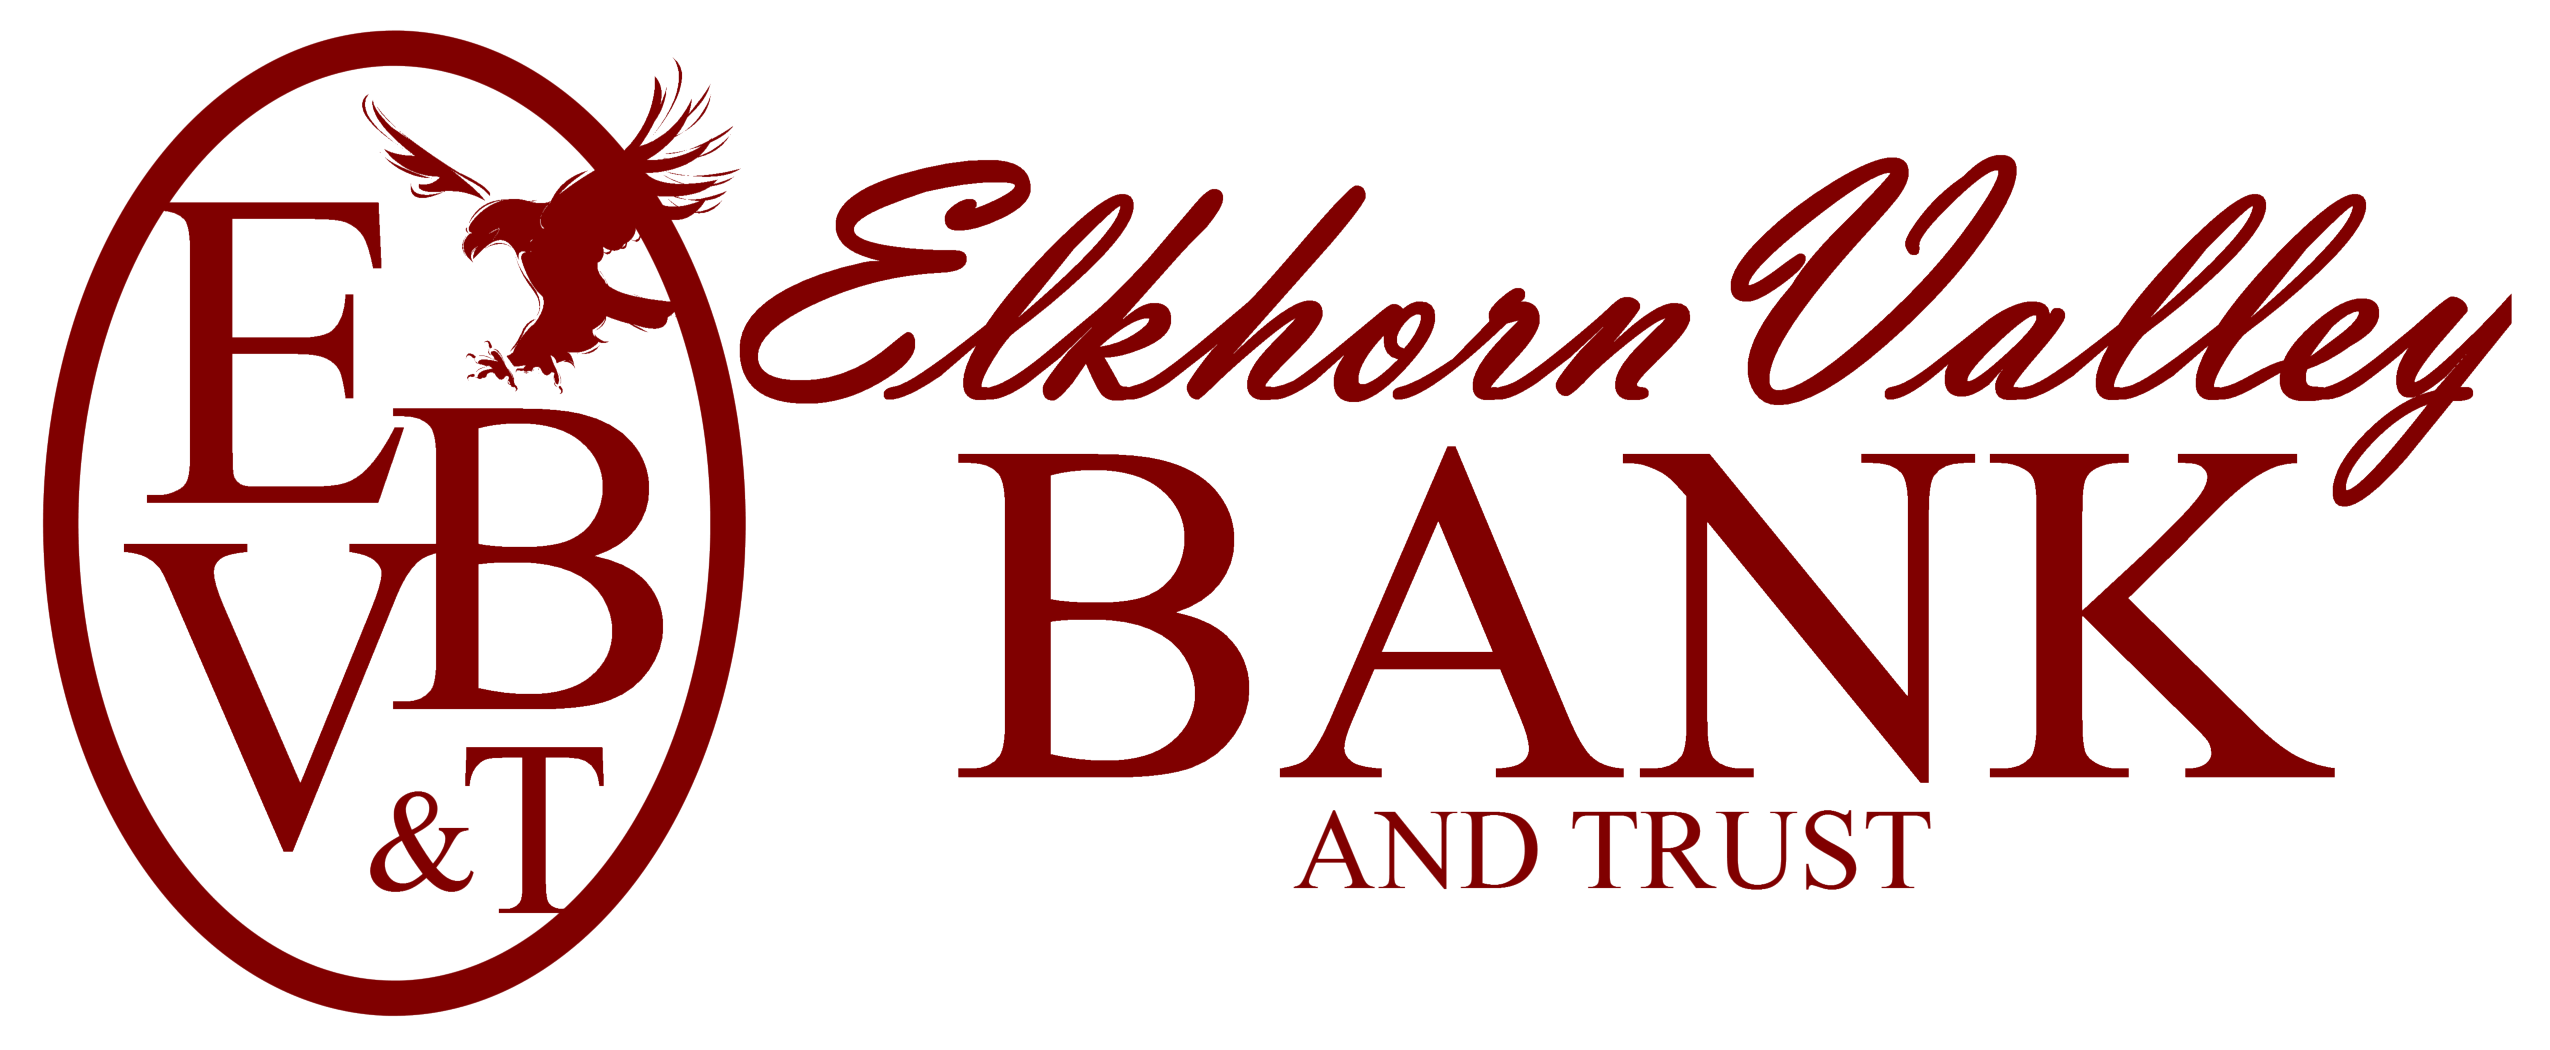 Elkhorn Valley Bank & Trust logo